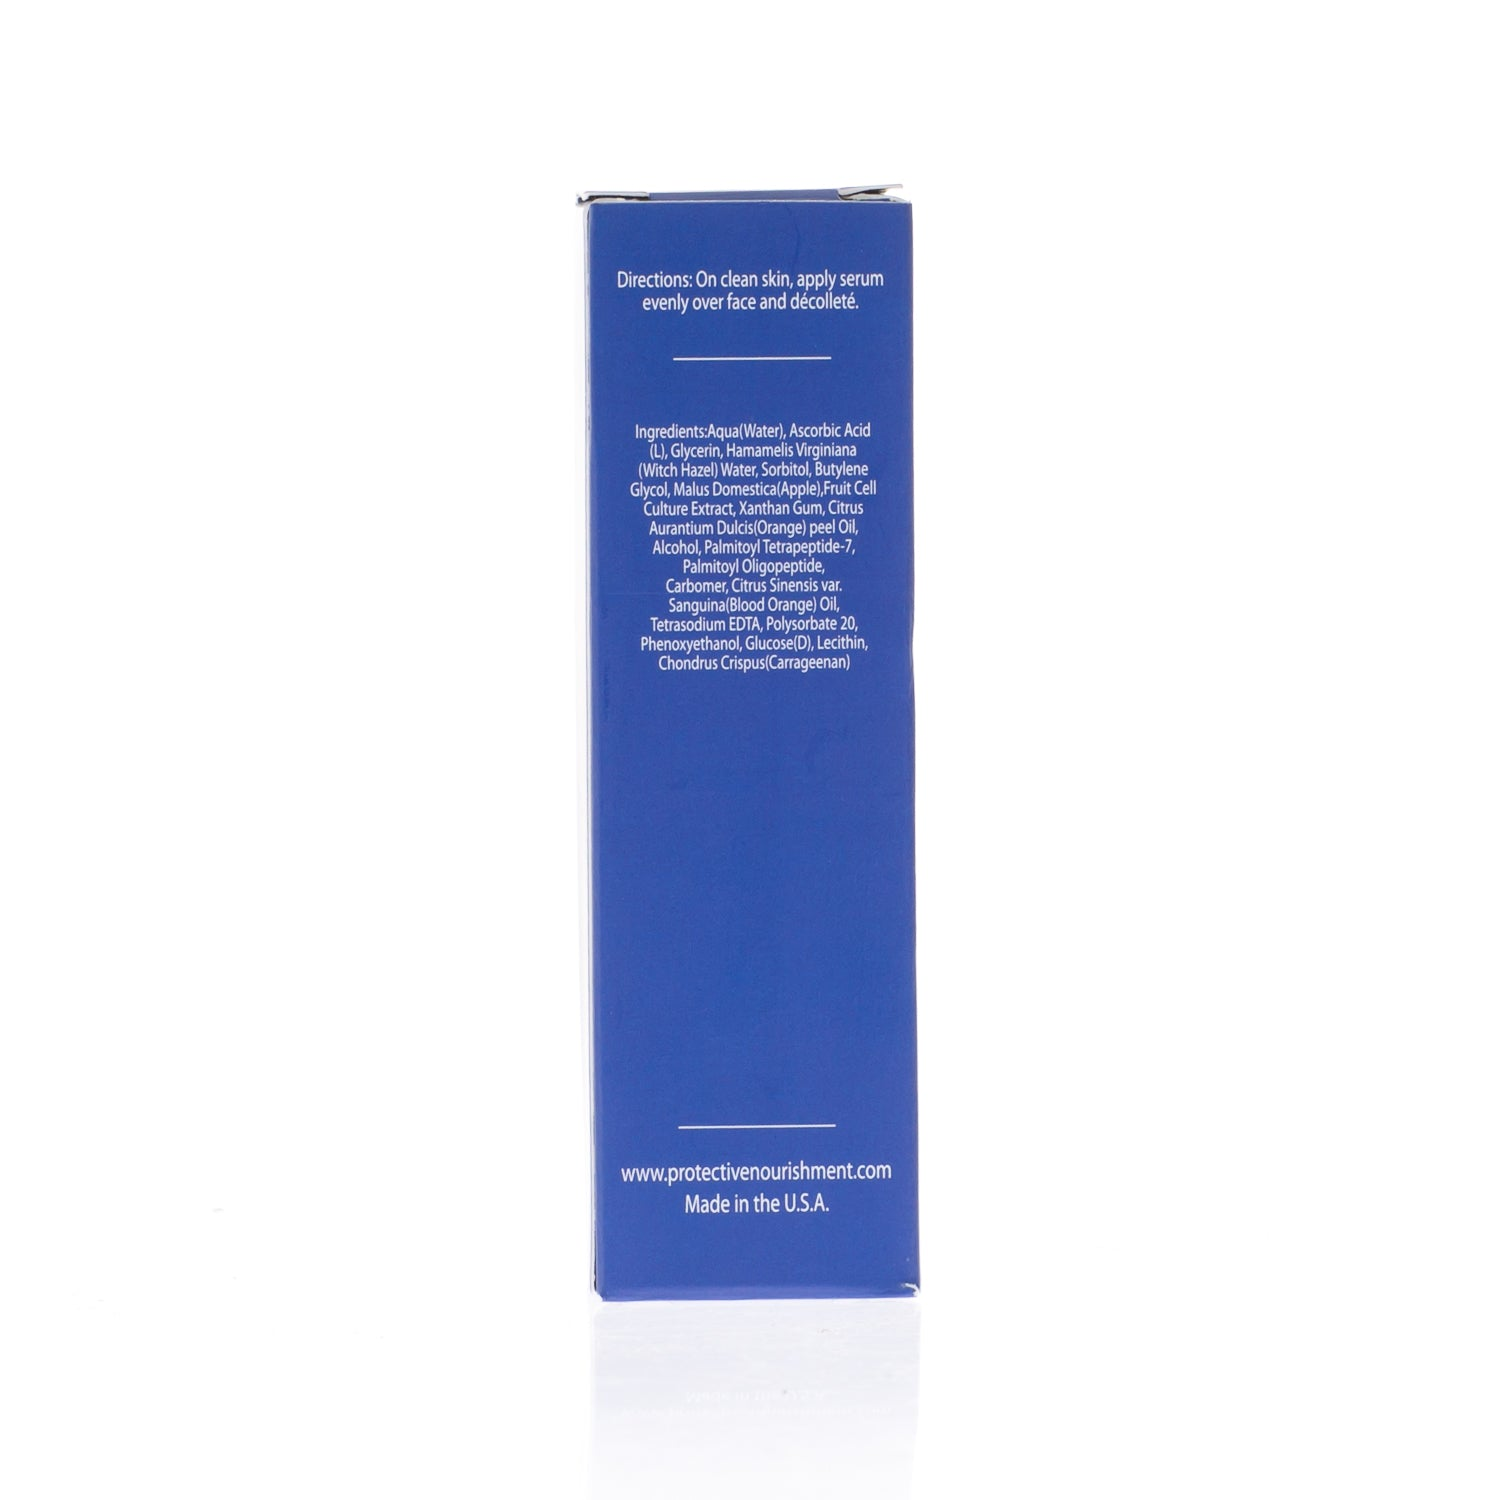 Super C Serum - Protective Nourishment